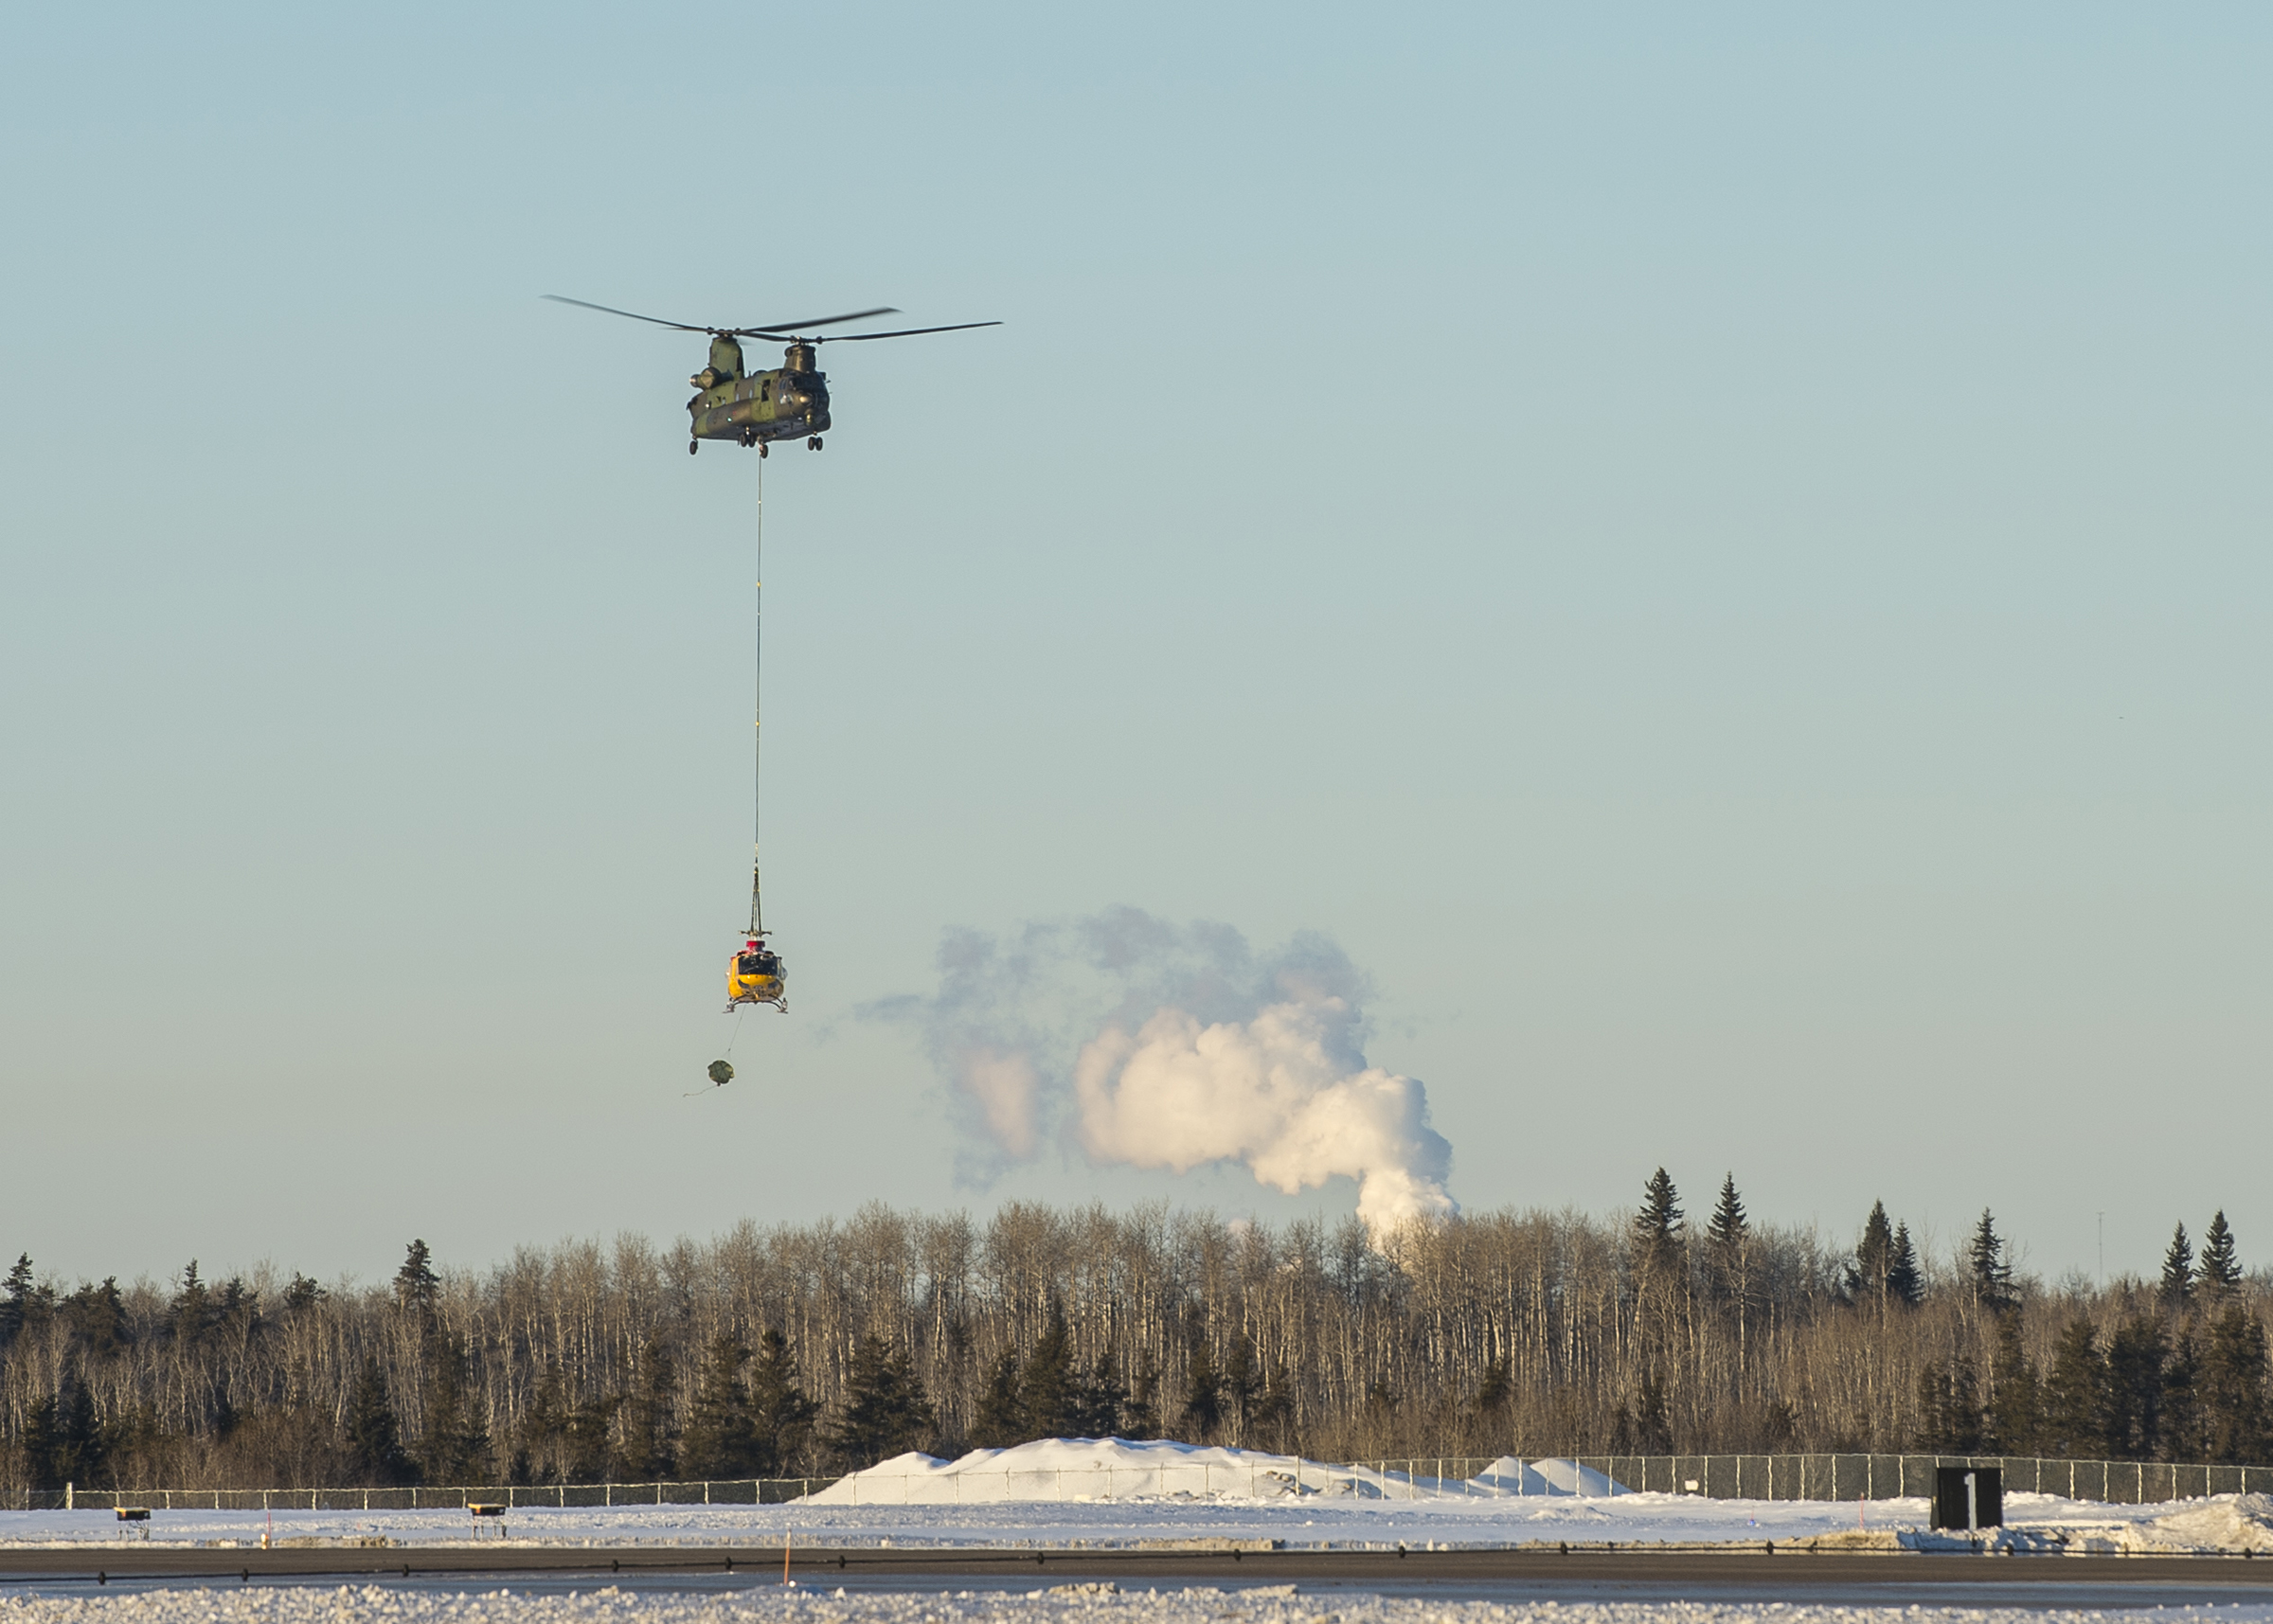 A CH-147F Chinook helicopter from 450 Tactical Helicopter Squadron, located in Petawawa, Ontario, approaches the 4 Wing Cold Lake, Alberta, airfield on January 15, 2019, to deliver a damaged CH-146 Griffon helicopter that it had transported from a remote area in the Cold Lake Air Weapons Range. PHOTO: Able Seaman Mathieu Potvin, AE02-2019-0011-007